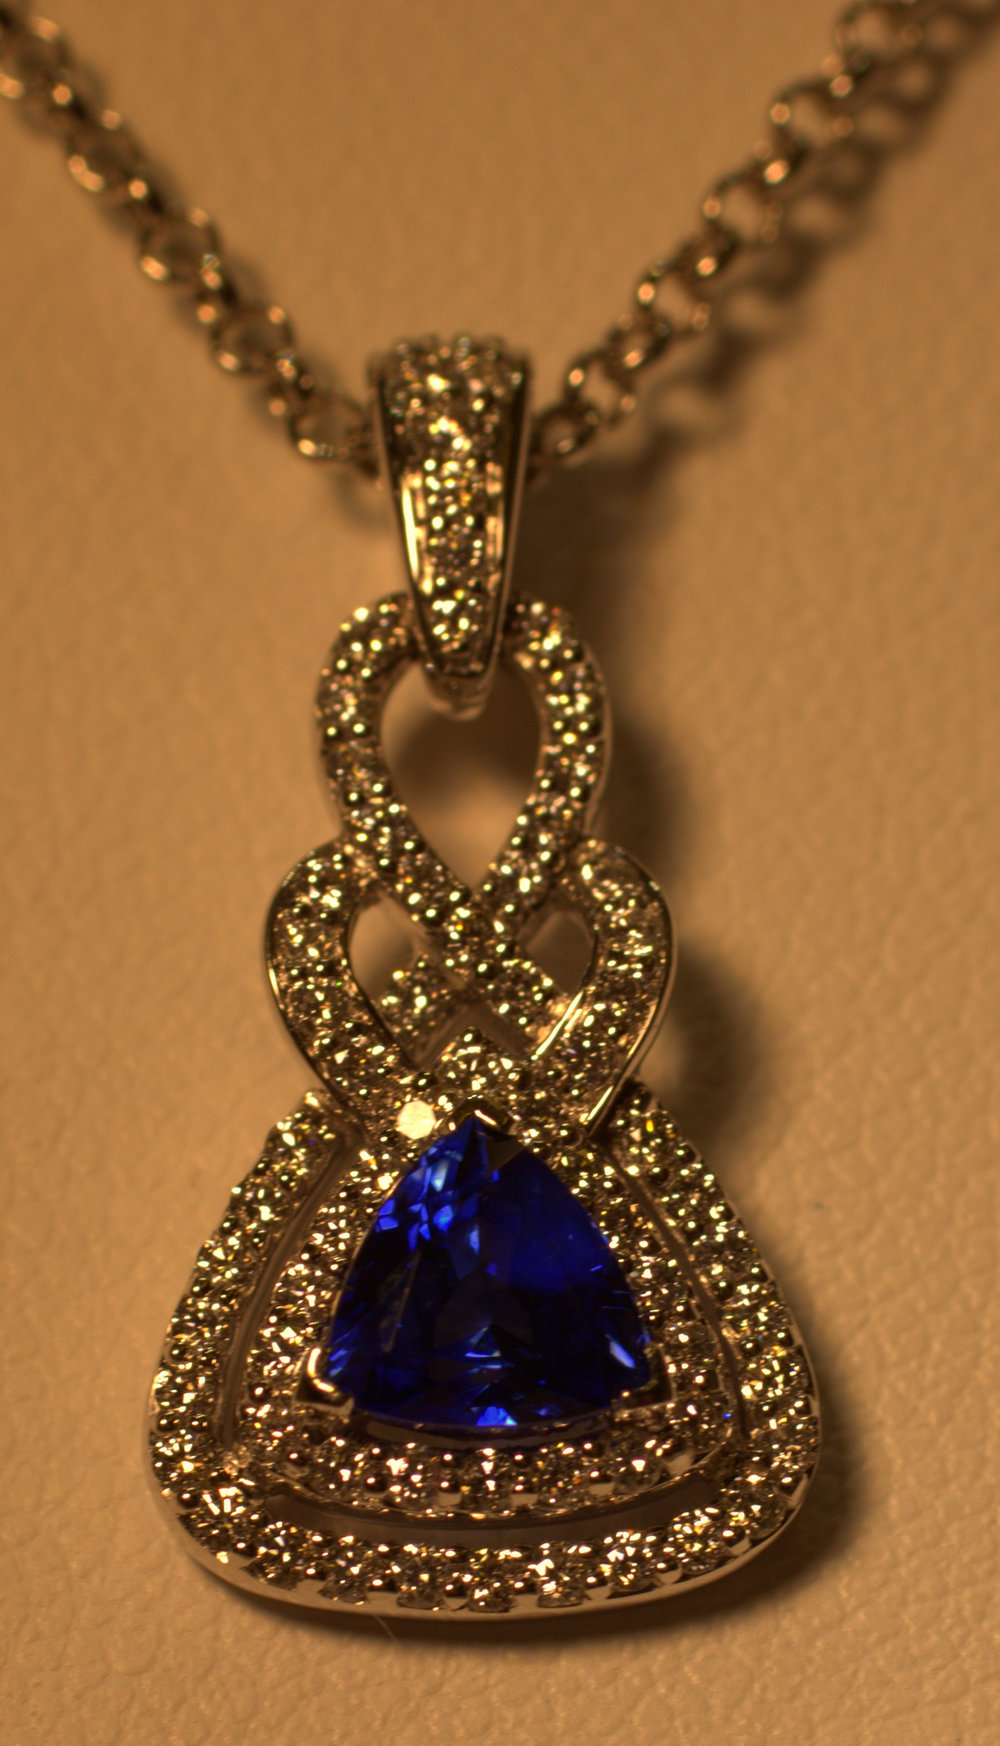 Twisted blue sapphire diamond pendant engagement rings jeweler vibrant blue sapphire and diamond pendant this pendant has a beautiful blue sapphire that sparkles aloadofball Gallery